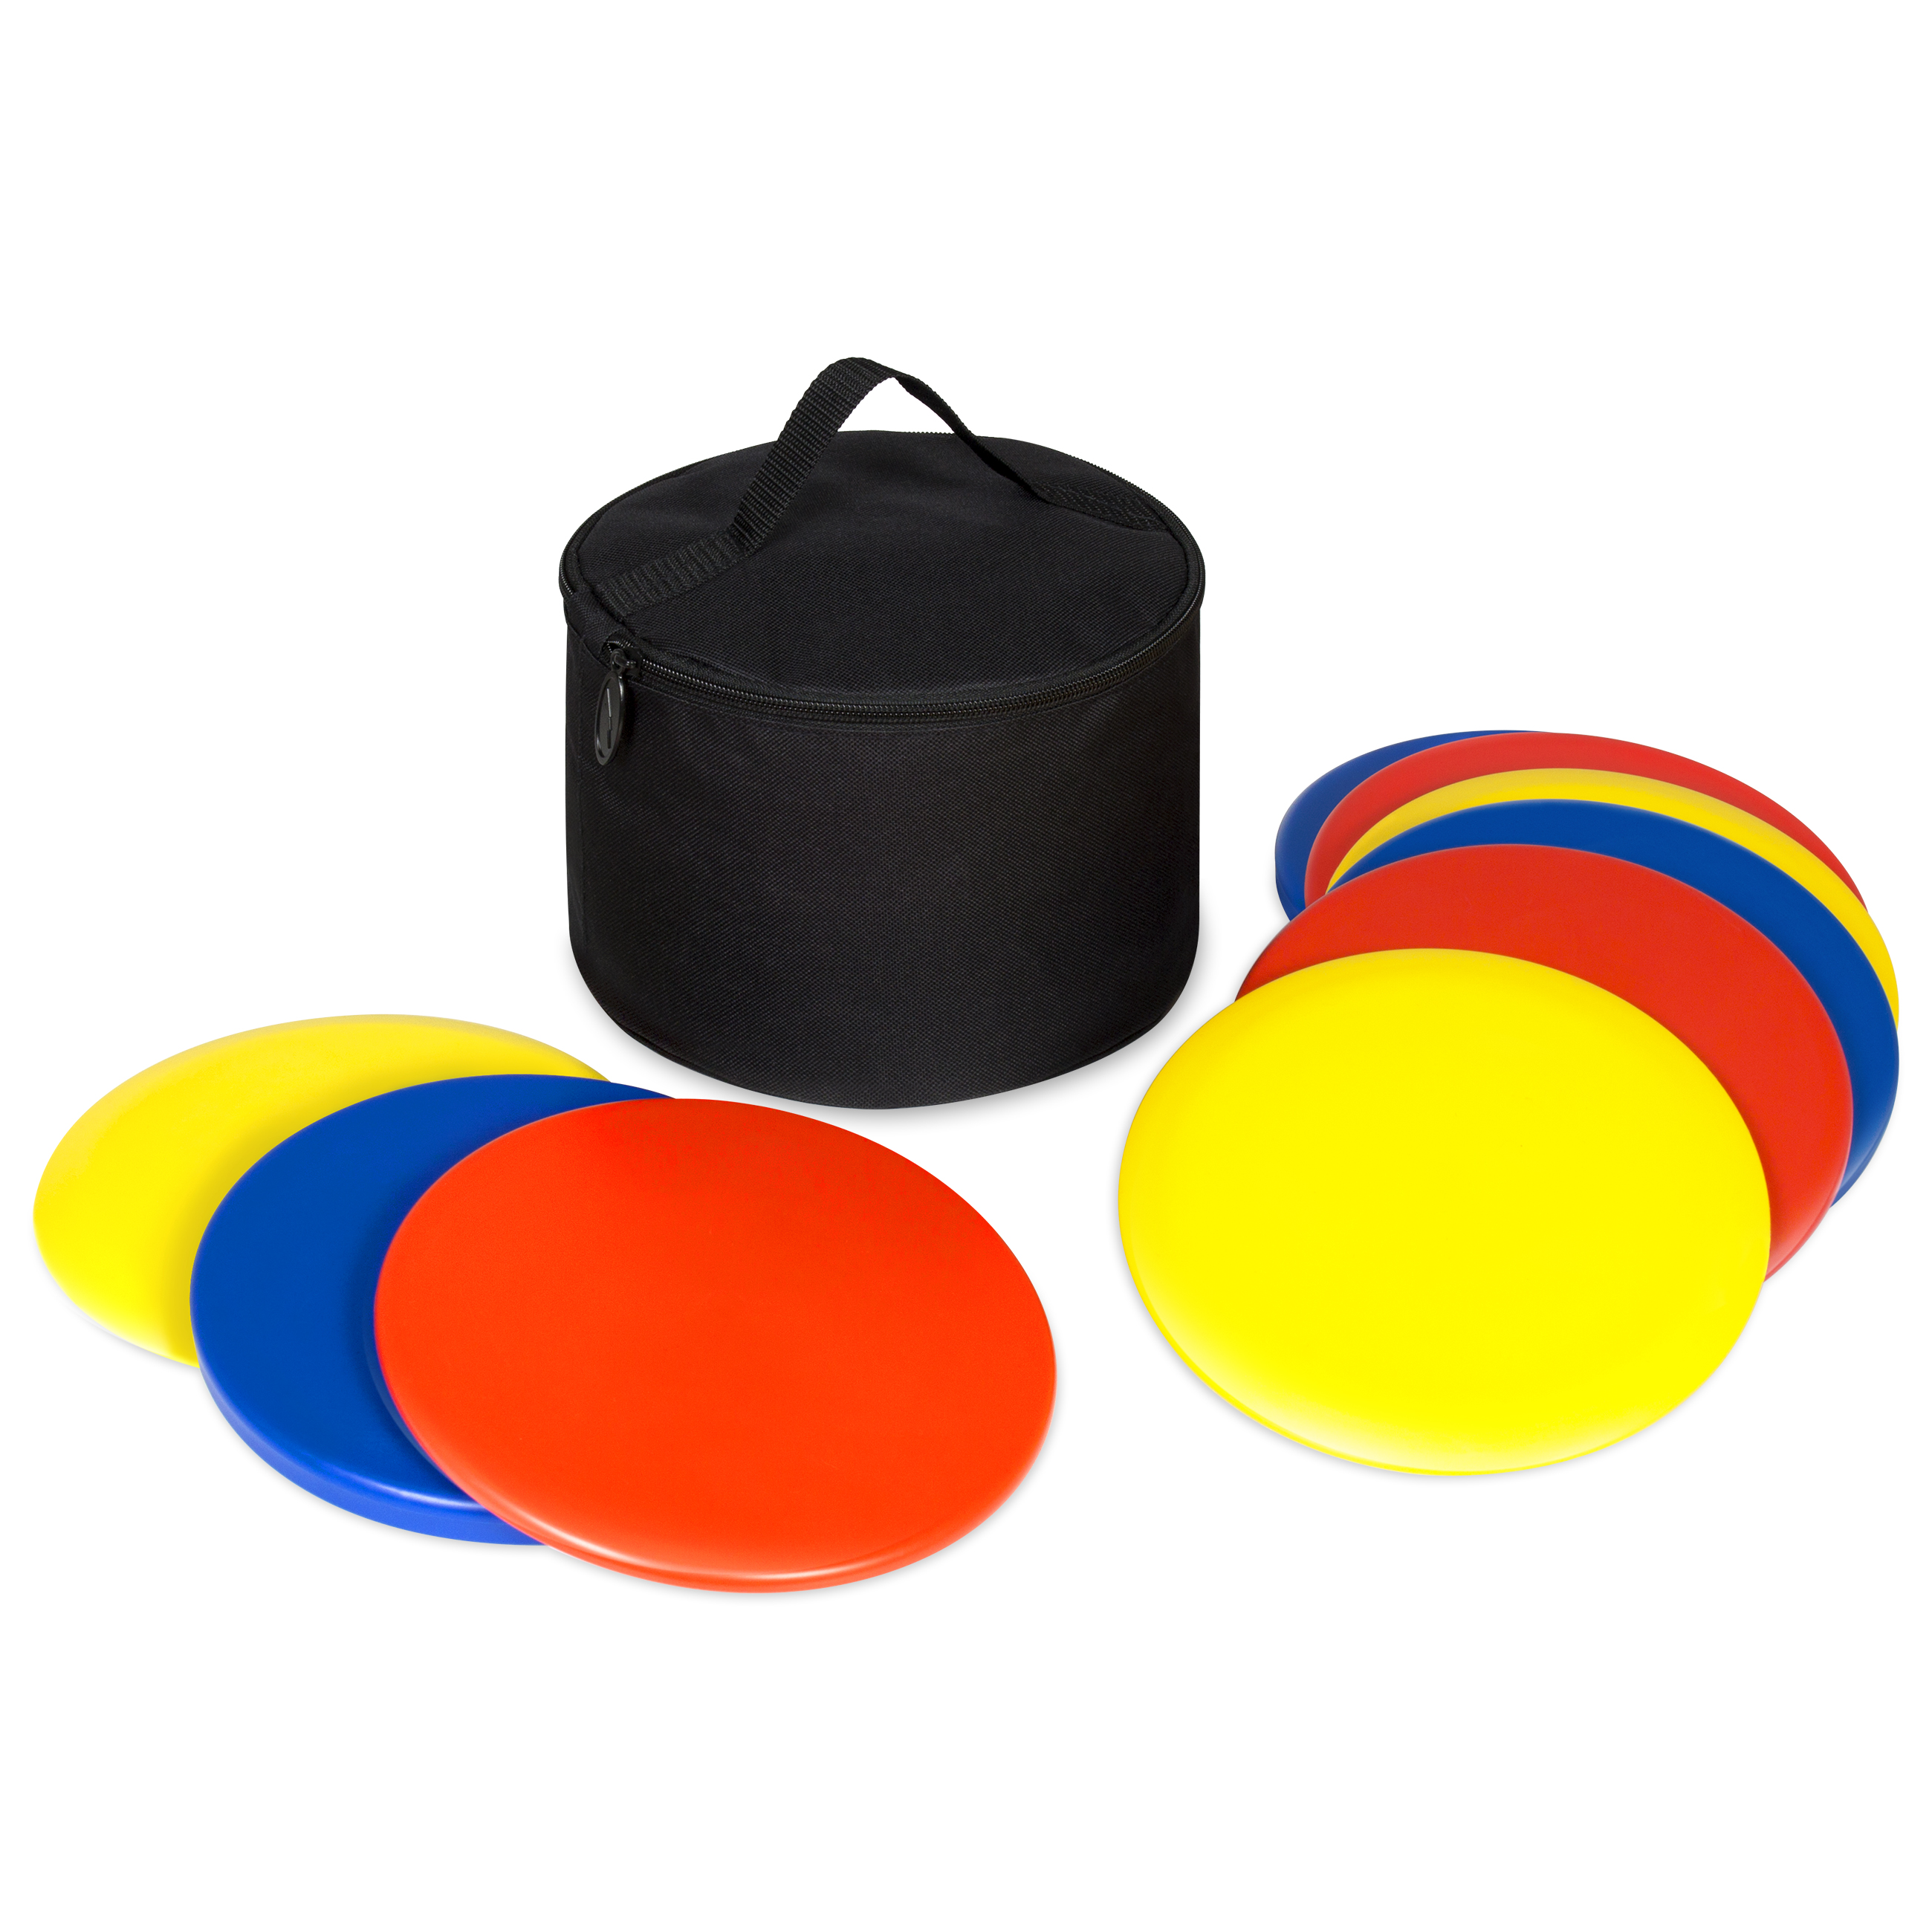 Best Choice Products 9-Piece Portable Lawn Games Disc Golf Set w  Carrying Bag Multicolor by Best Choice Products